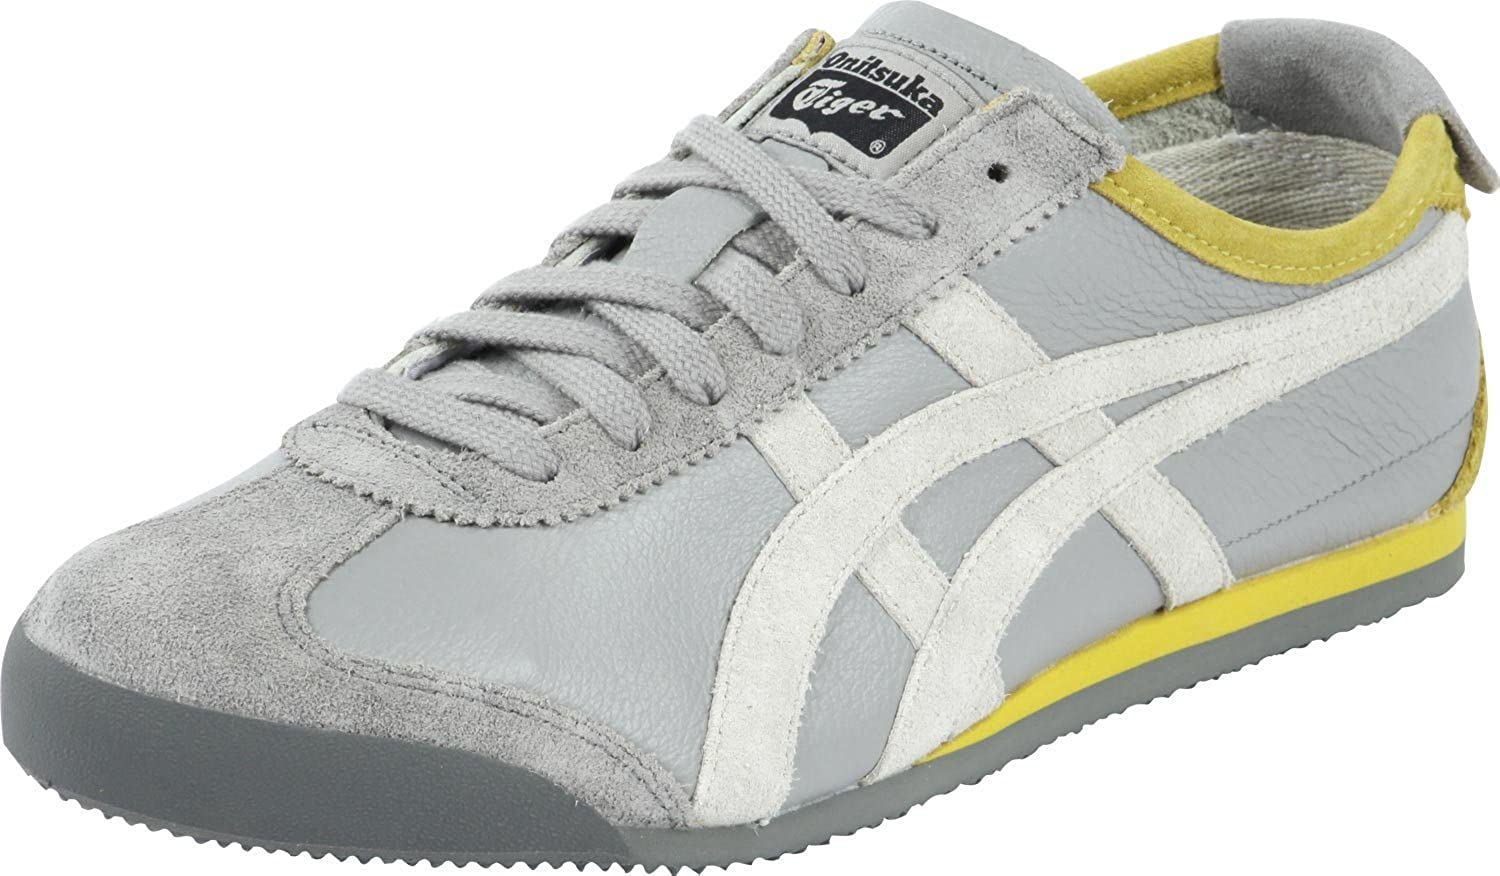 factory authentic ab29a 81dce Onitsuka Tiger Mexico 66 Vintage Leather Grey White Yellow ...